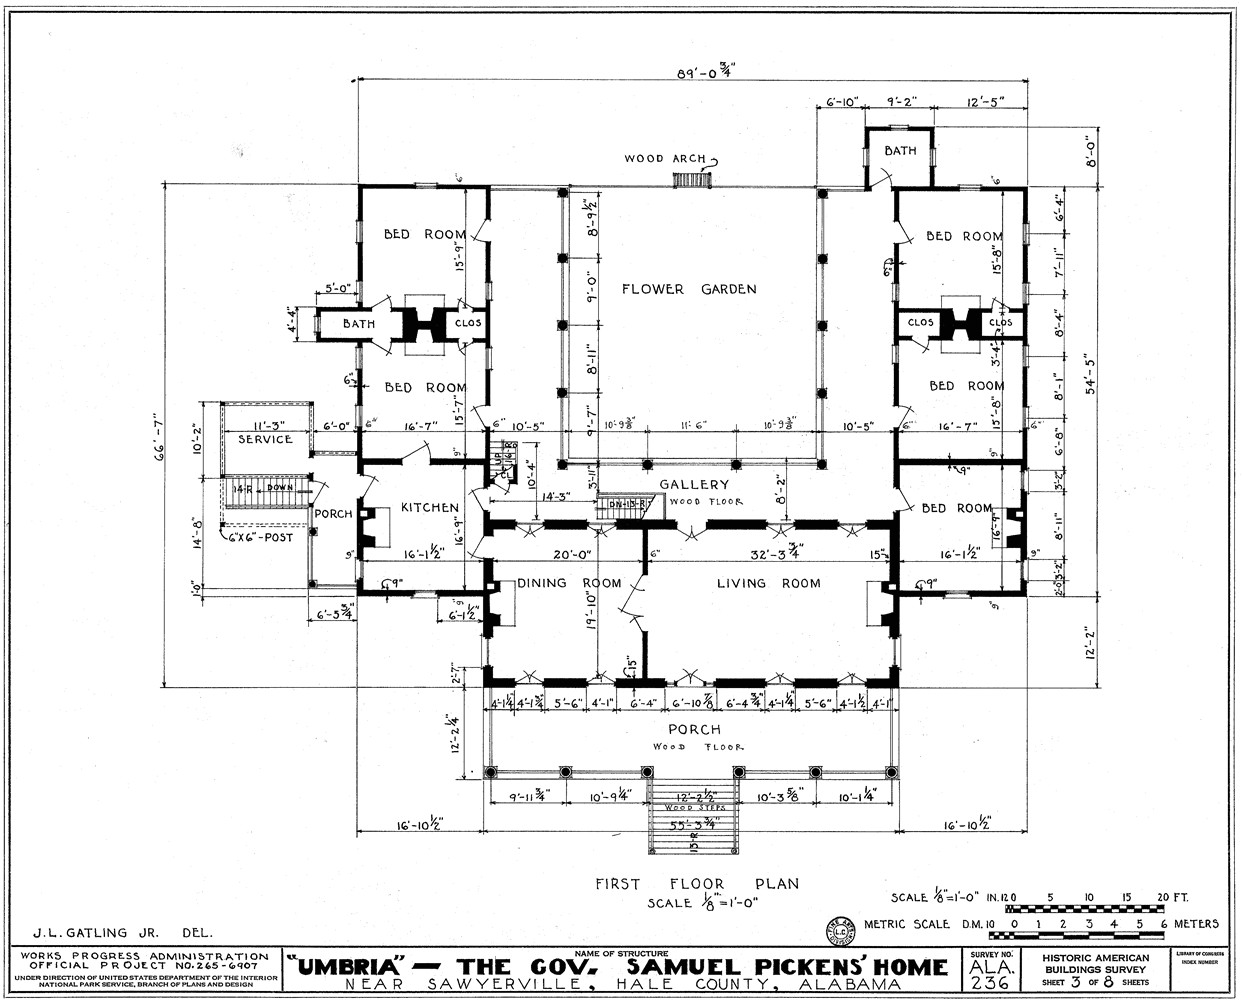 architectural drawings with dimensions